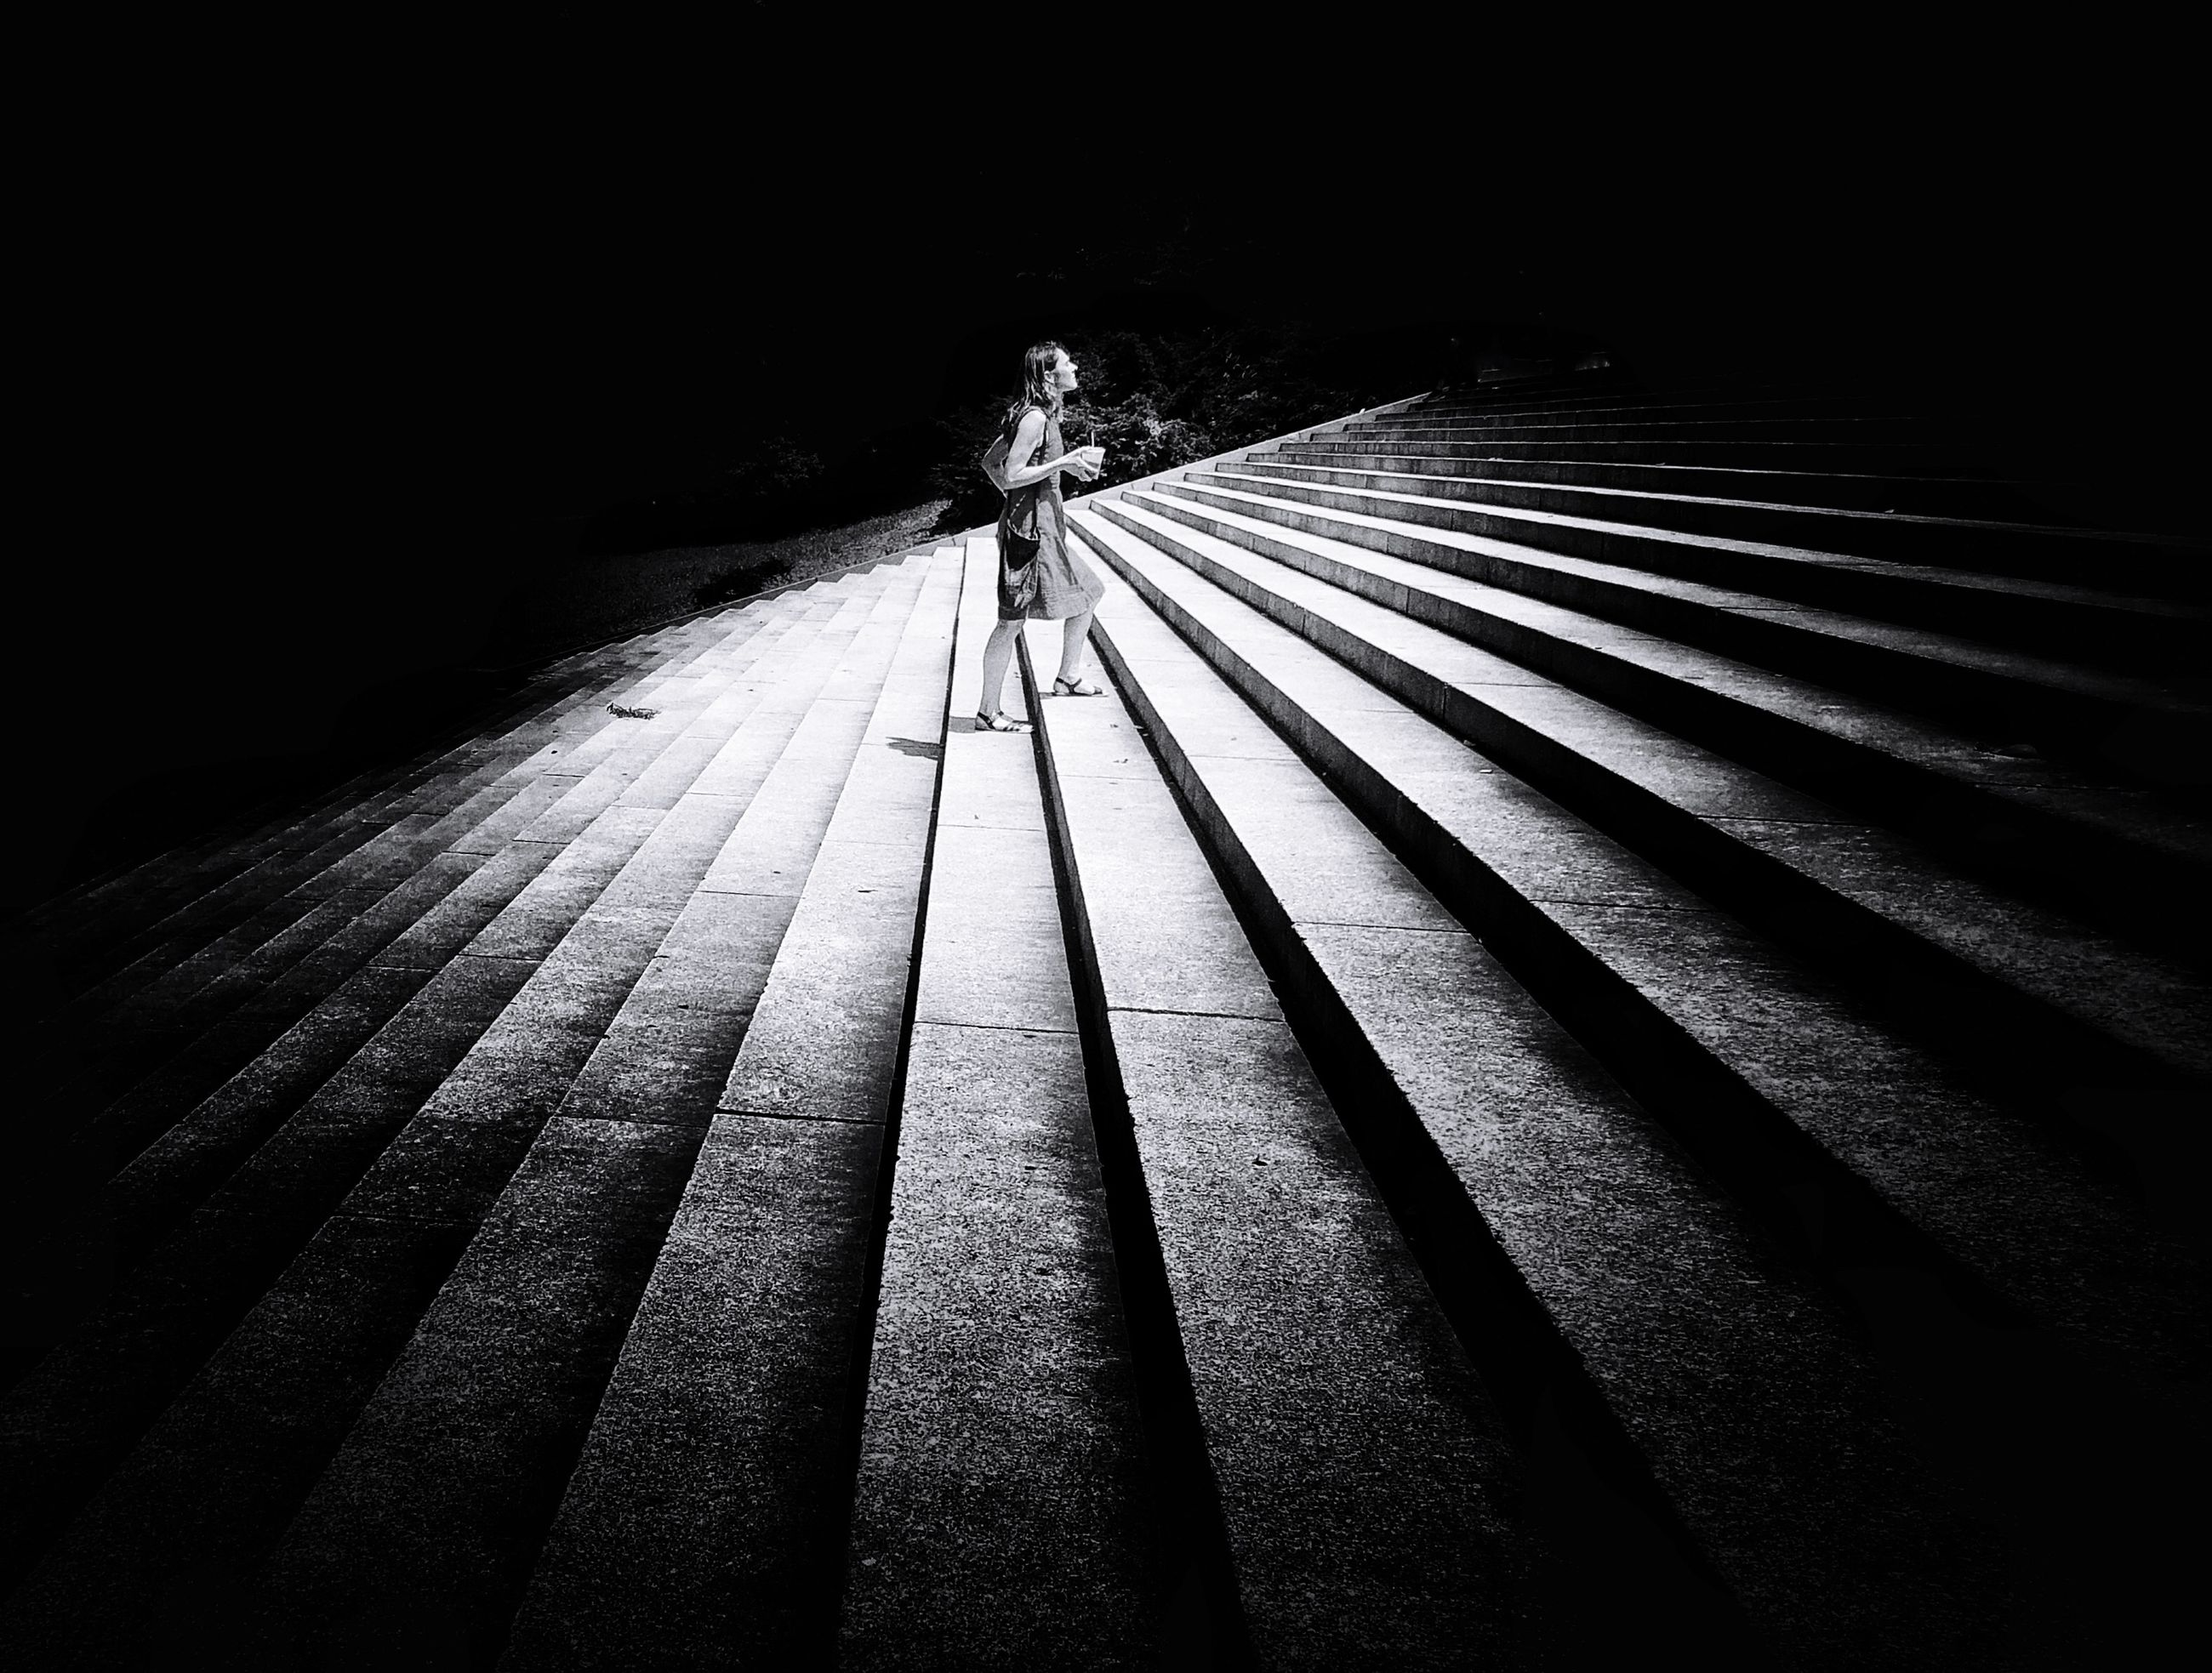 one person, shadow, walking, full length, pattern, rear view, real people, architecture, lifestyles, the way forward, high angle view, nature, night, staircase, men, outdoors, leisure activity, direction, dark